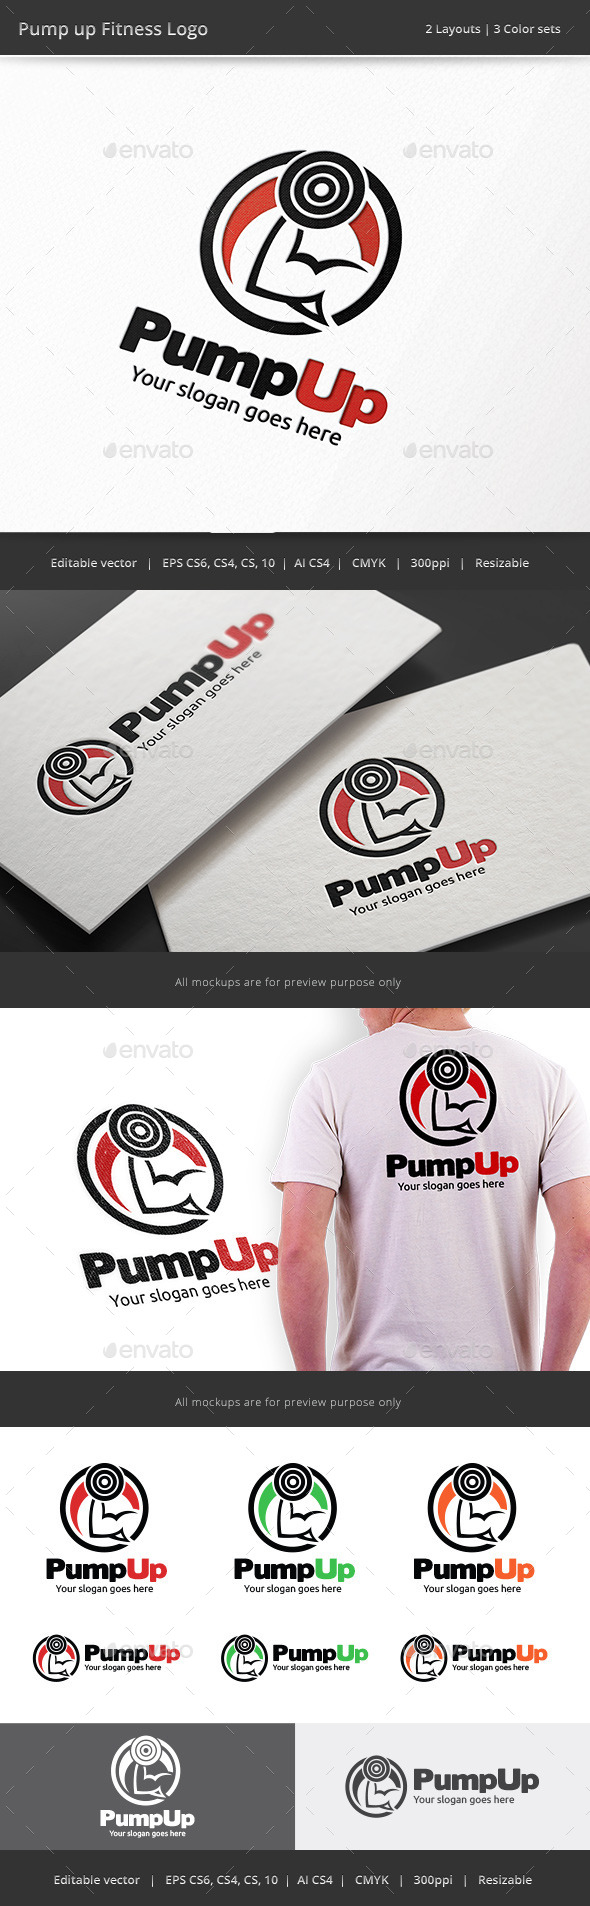 GraphicRiver Pump Up Fitness Logo 8896226